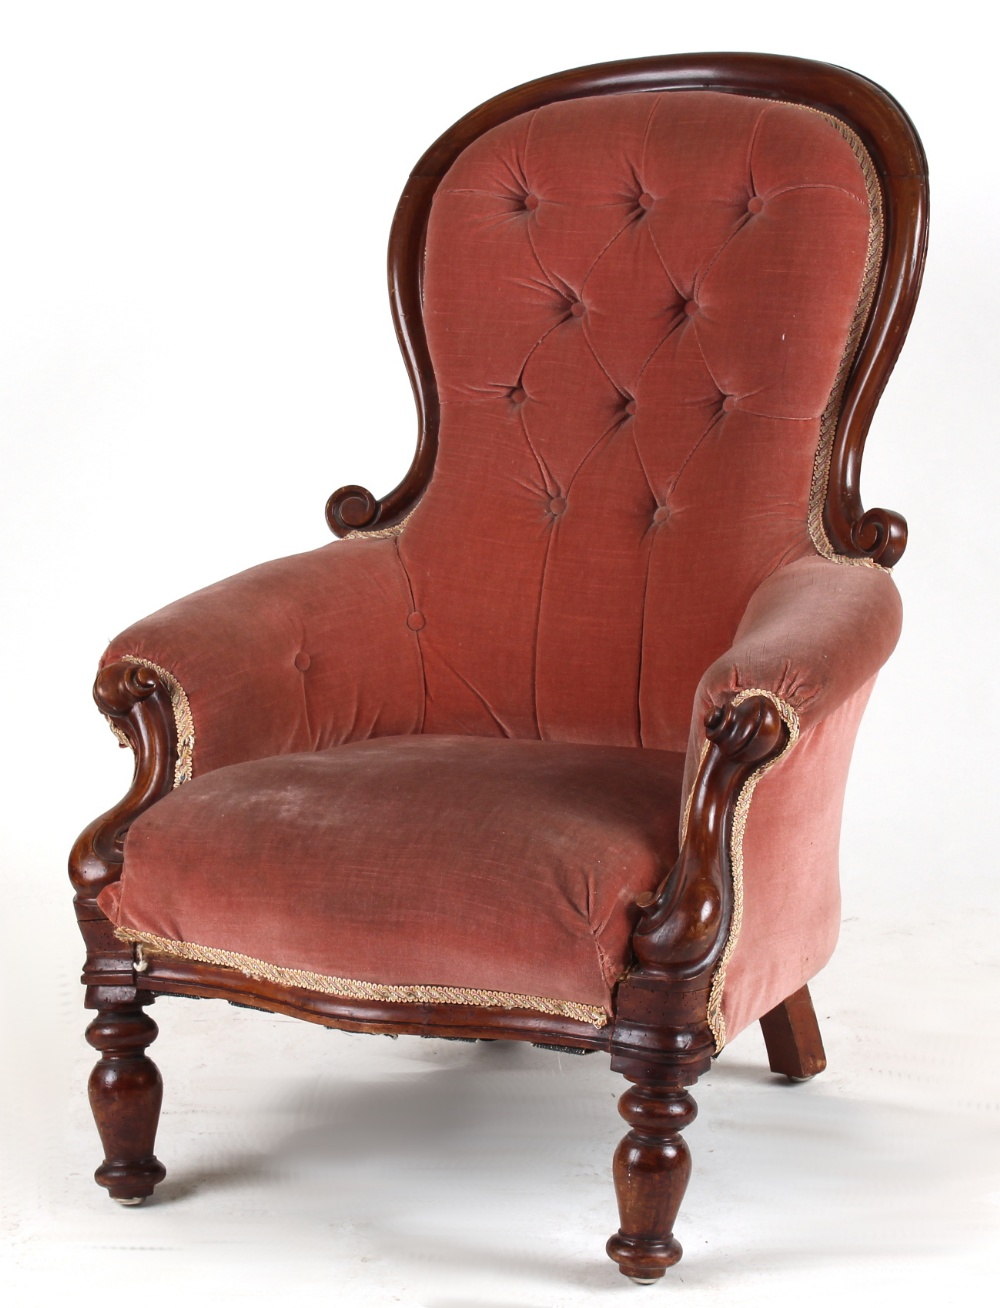 Lot 168 - Property of a lady of title - a Victorian pink upholstered spoon-back armchair (for restoration) (